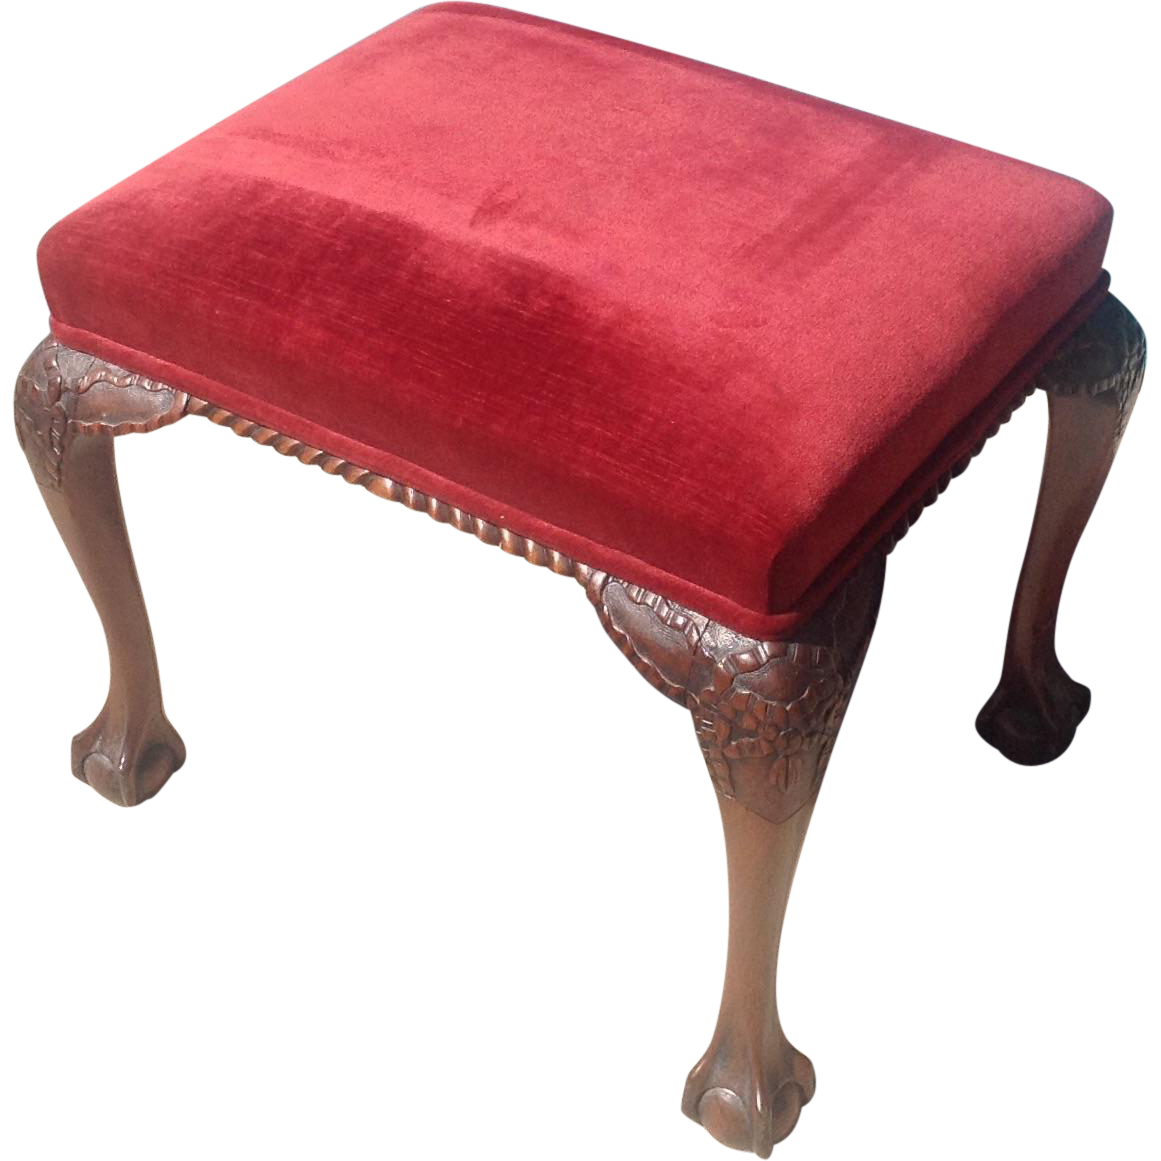 C. 1910 American or English Stool